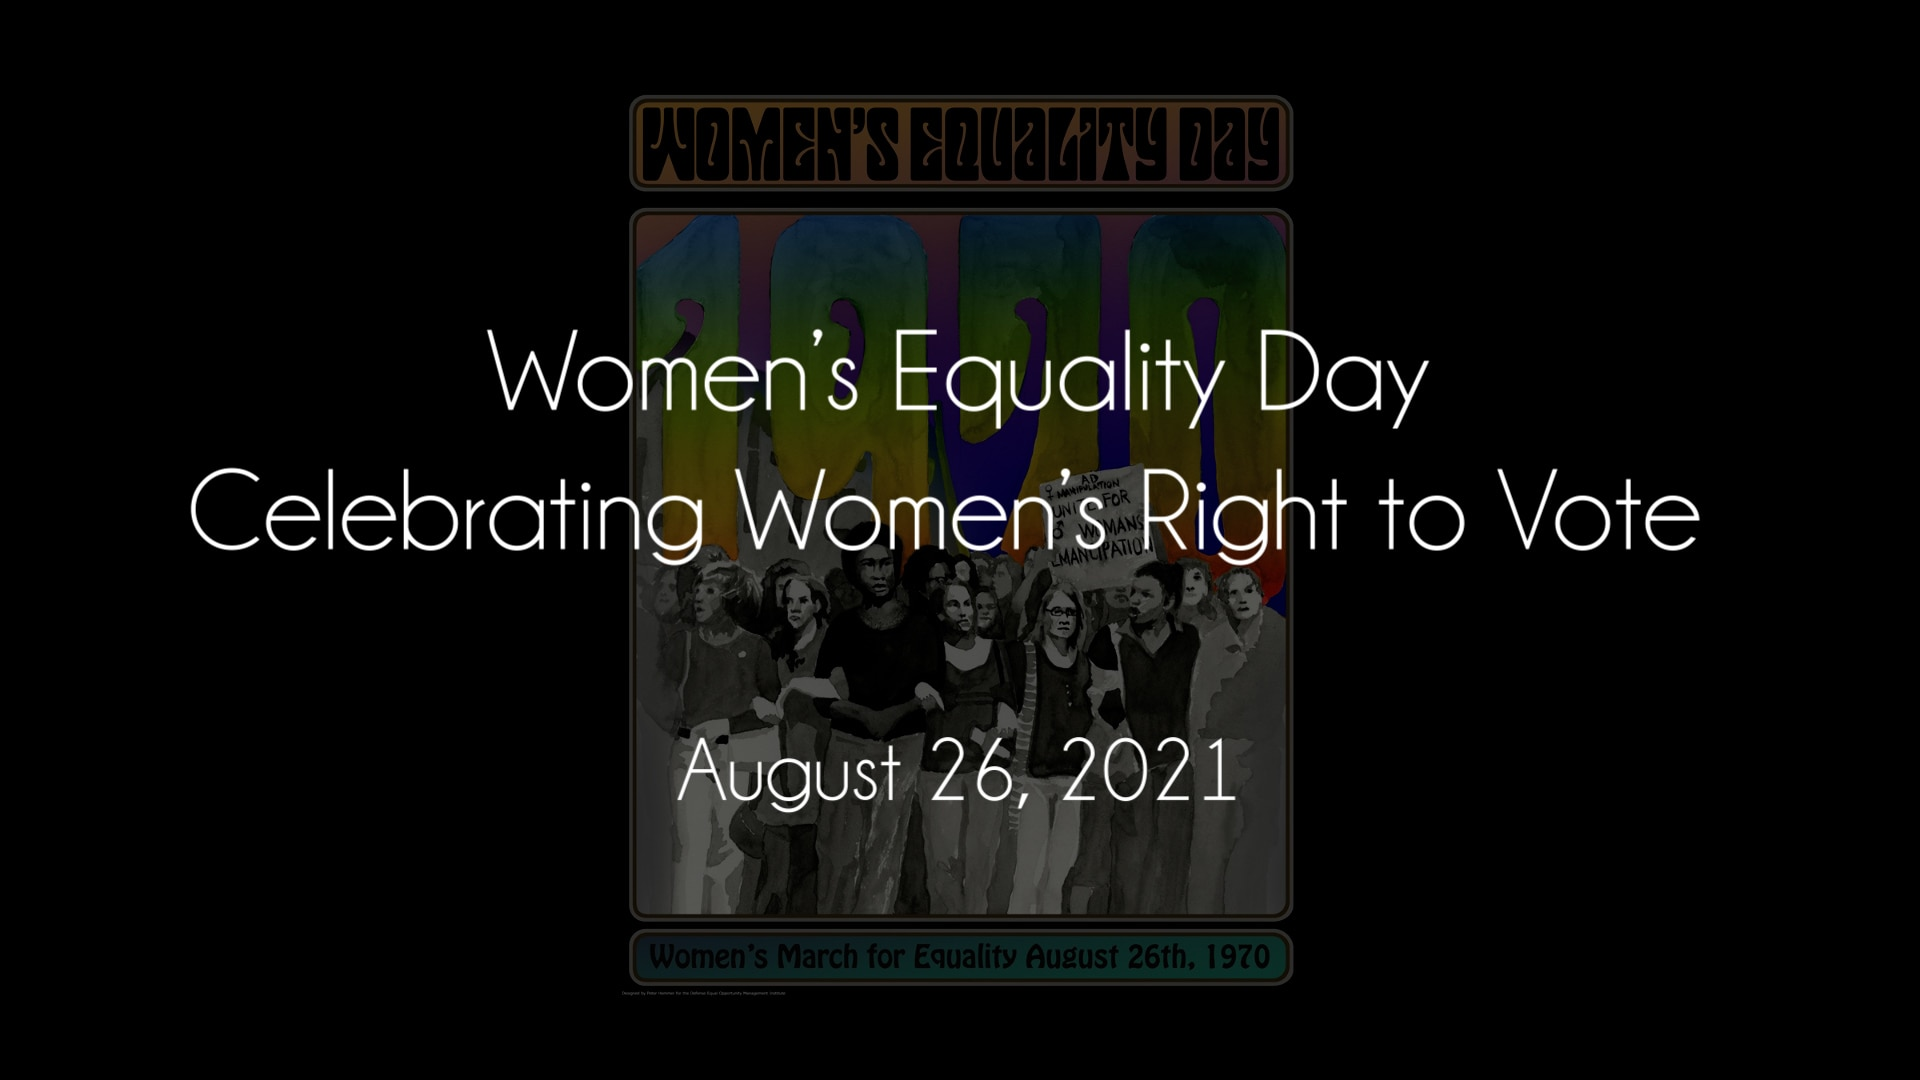 Text: Women's Equality Day: Celebrating Women's Right to Vote